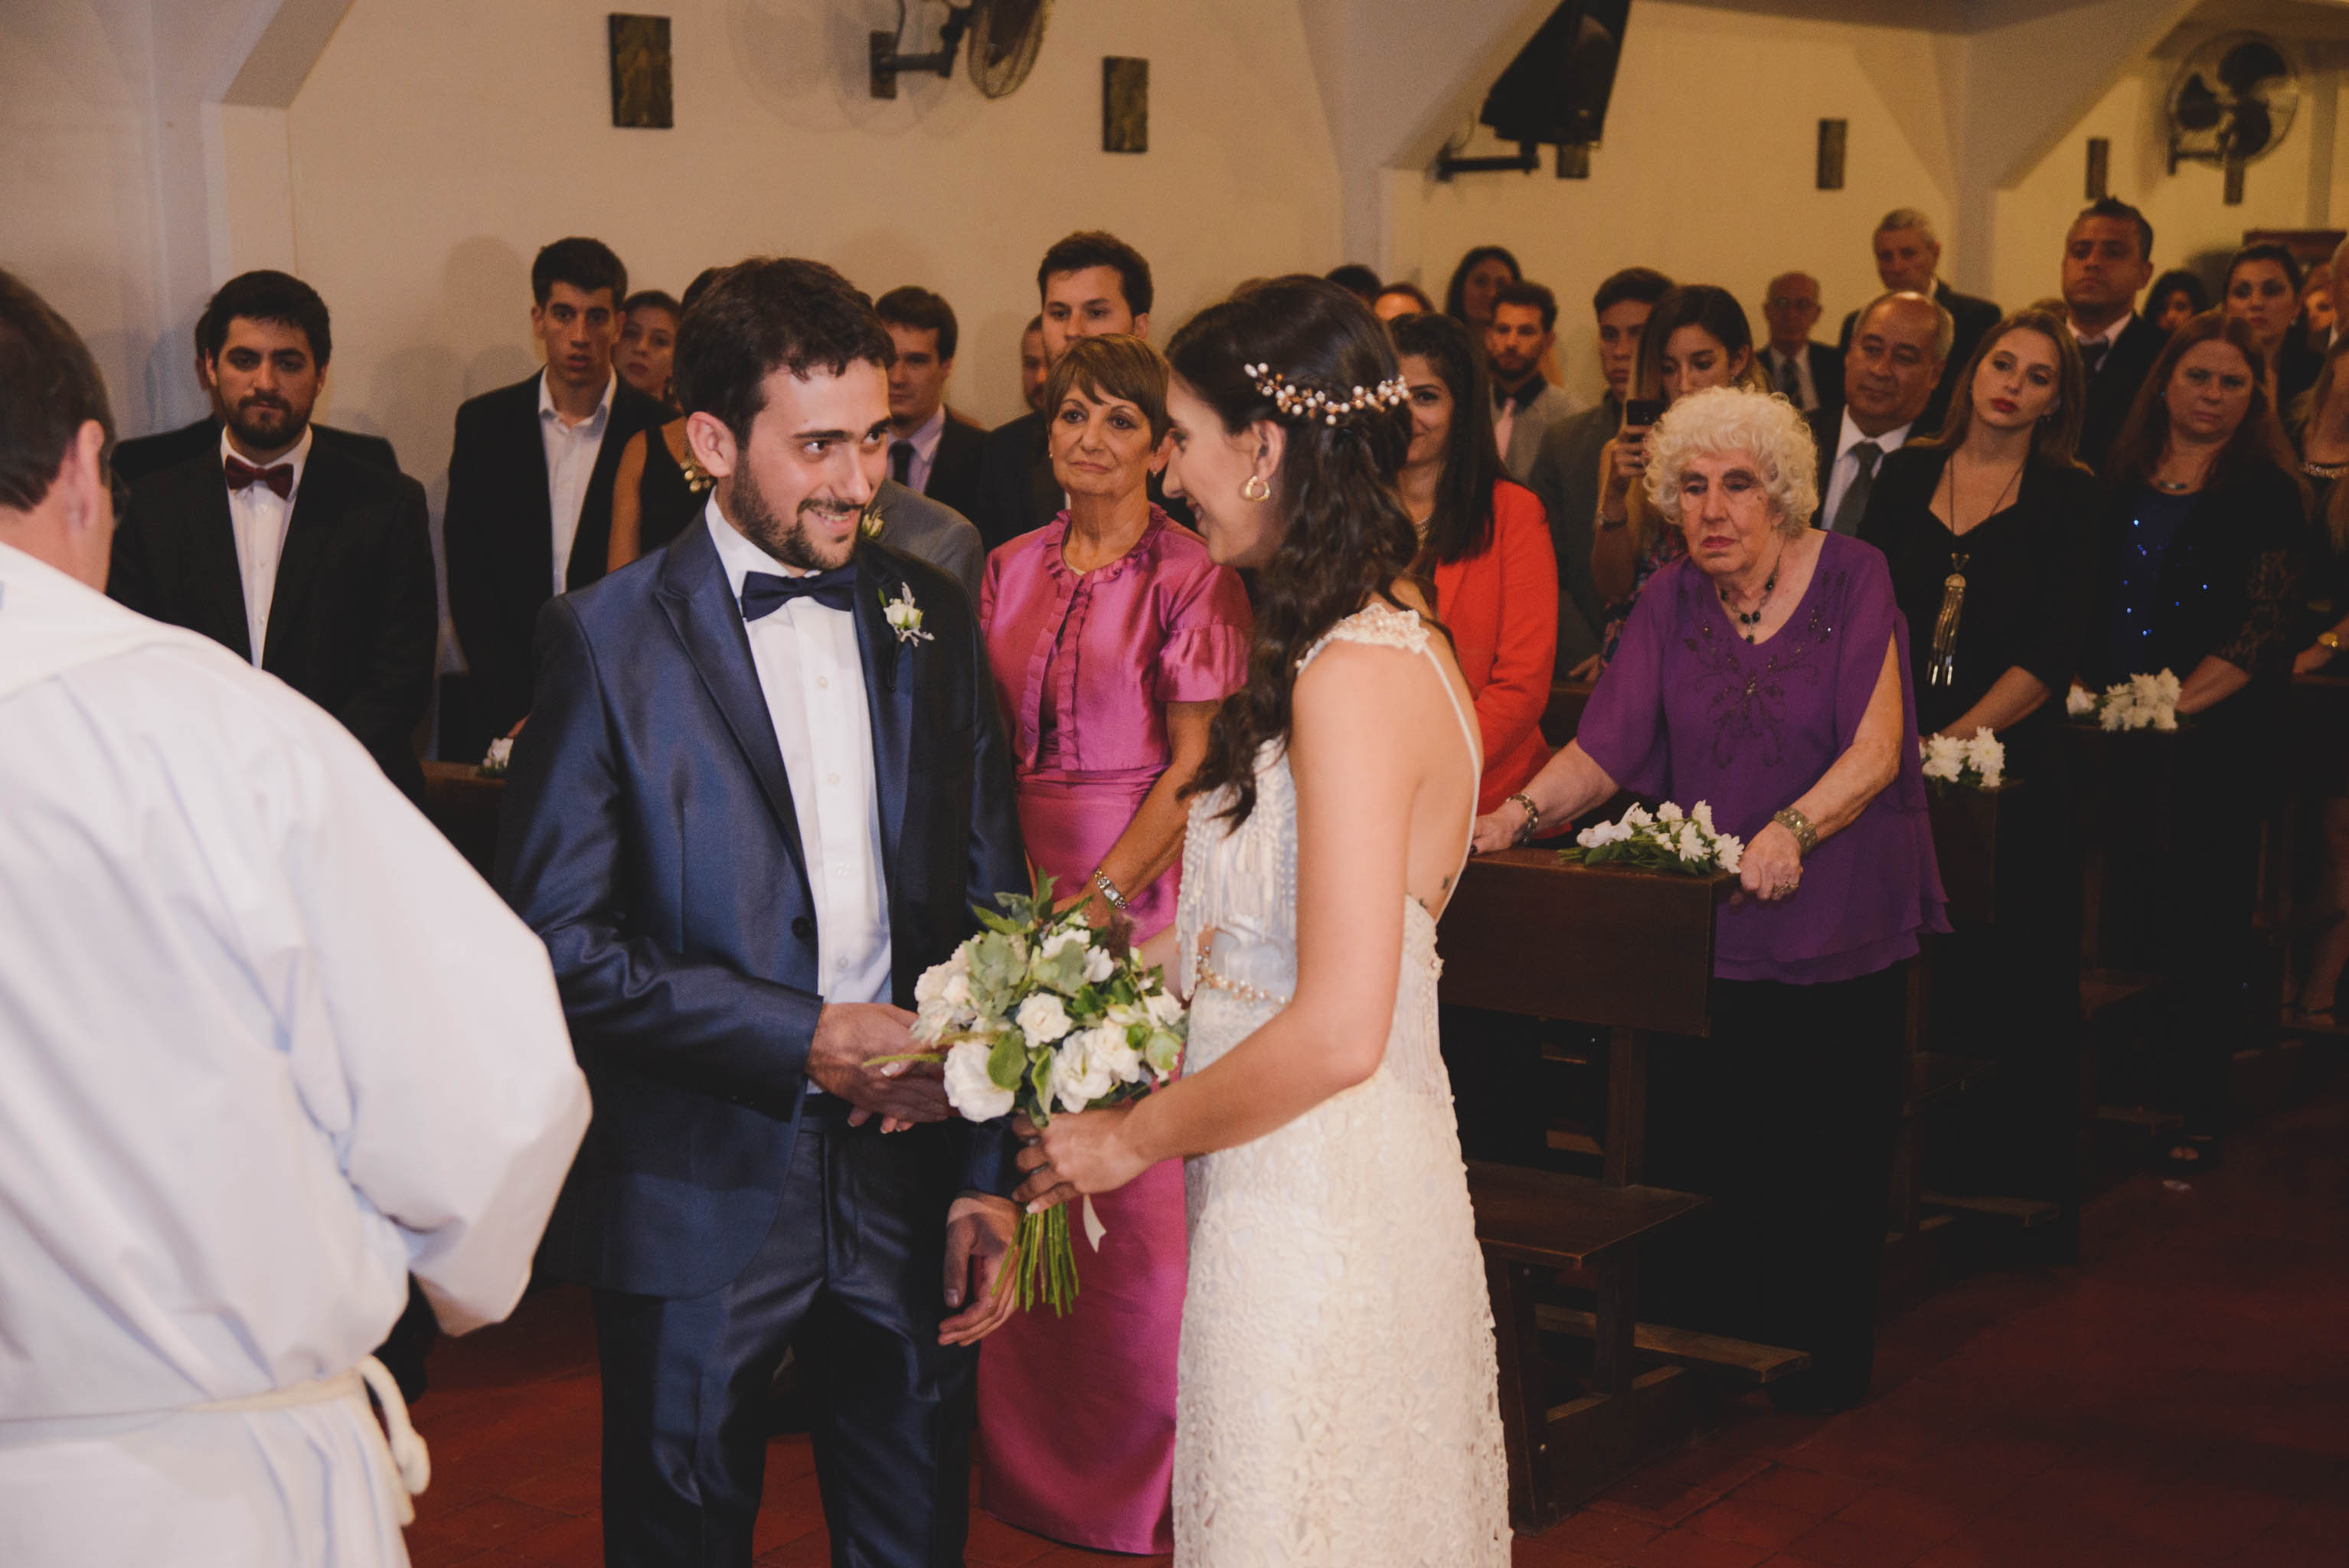 Lovely Photo Wedding - fotografia de bodas casamientos fotografo buenos aires